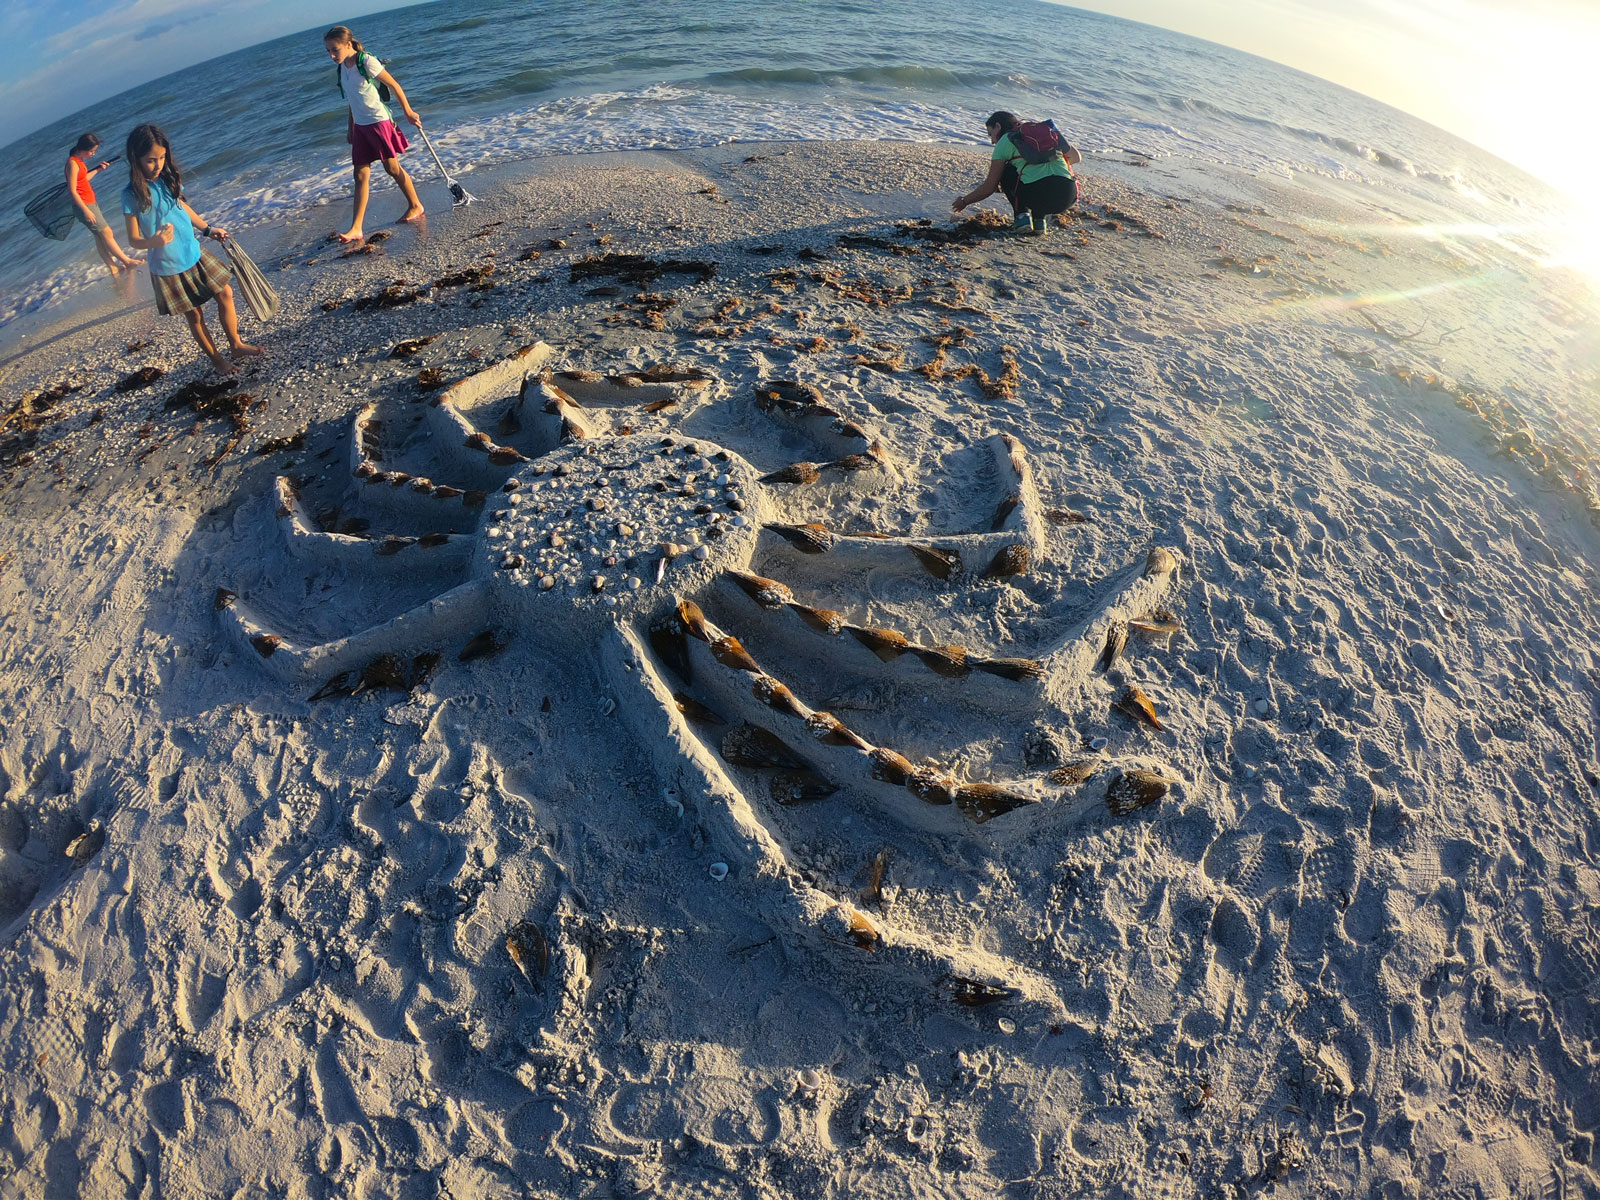 Family of four looking at sand crab sculpture with seashells on Sanibel Island, FL